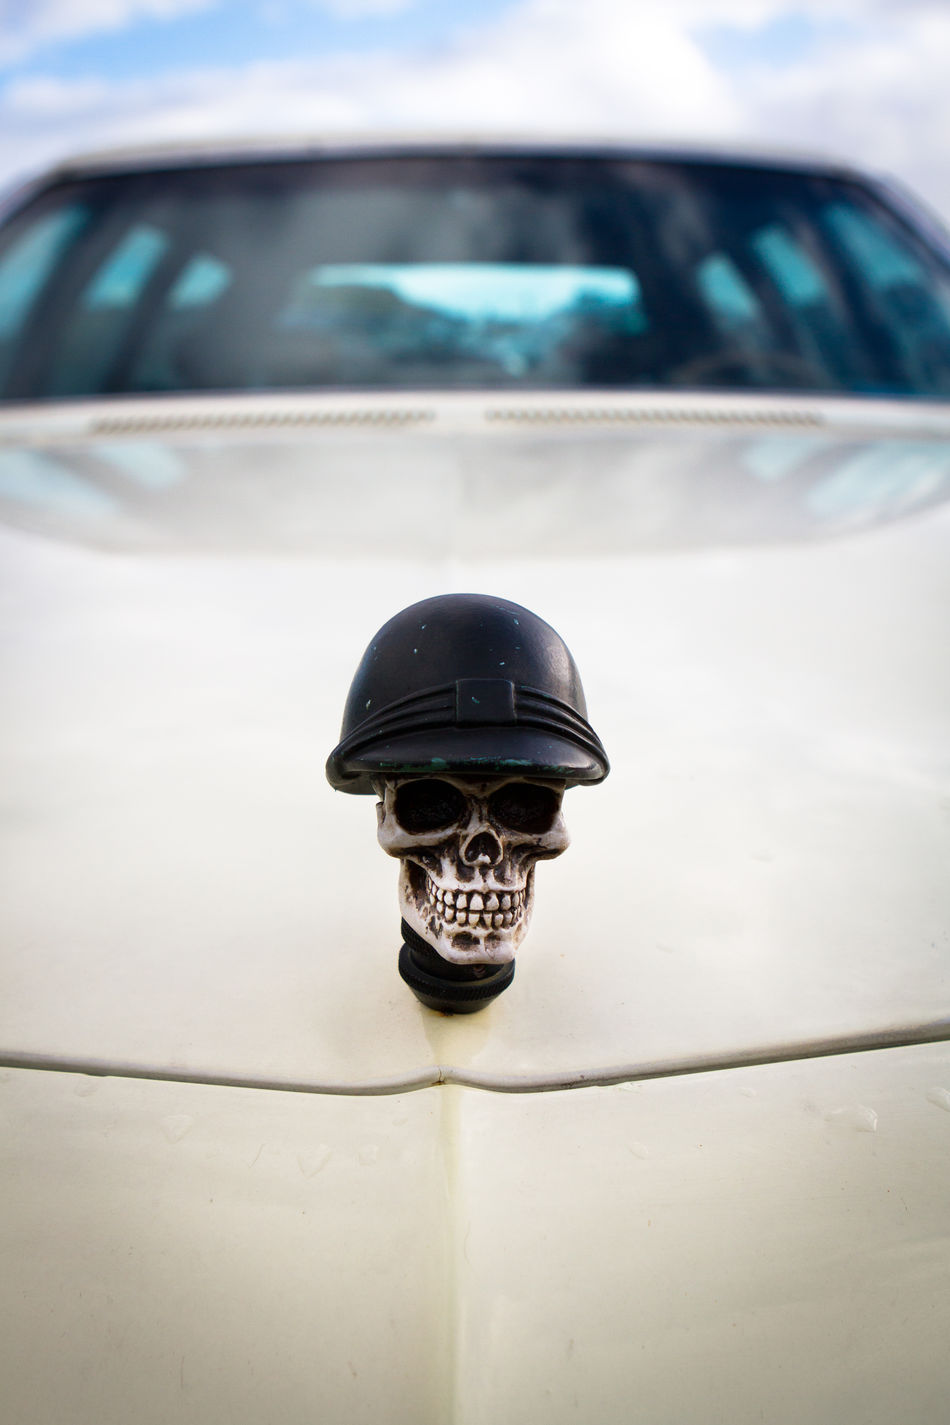 Art Is Everywhere Blurred Background Bonnet Car Close-up Day Death Death's Head Decoration Front View Helmet Land Vehicle Mode Of Transport No People Outdoors Selfmade Skull Transportation